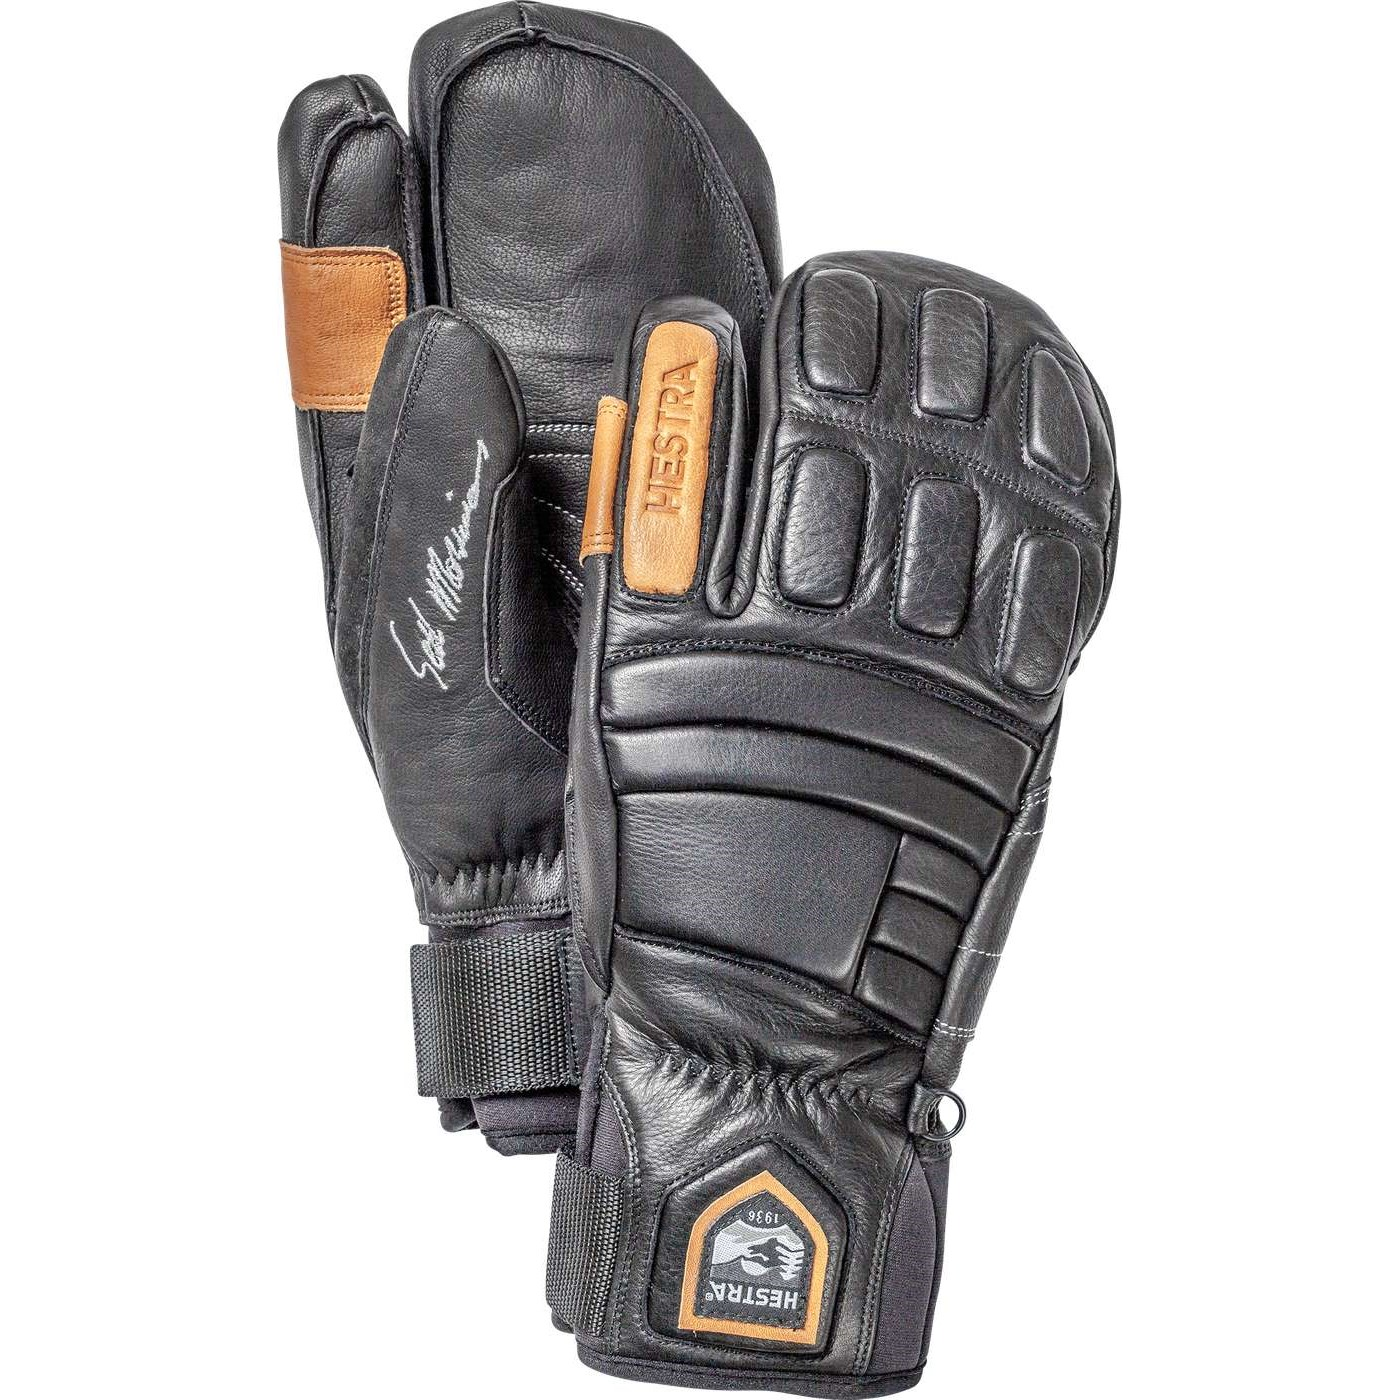 Hestra mens gloves - Hestra Mens Gloves 15